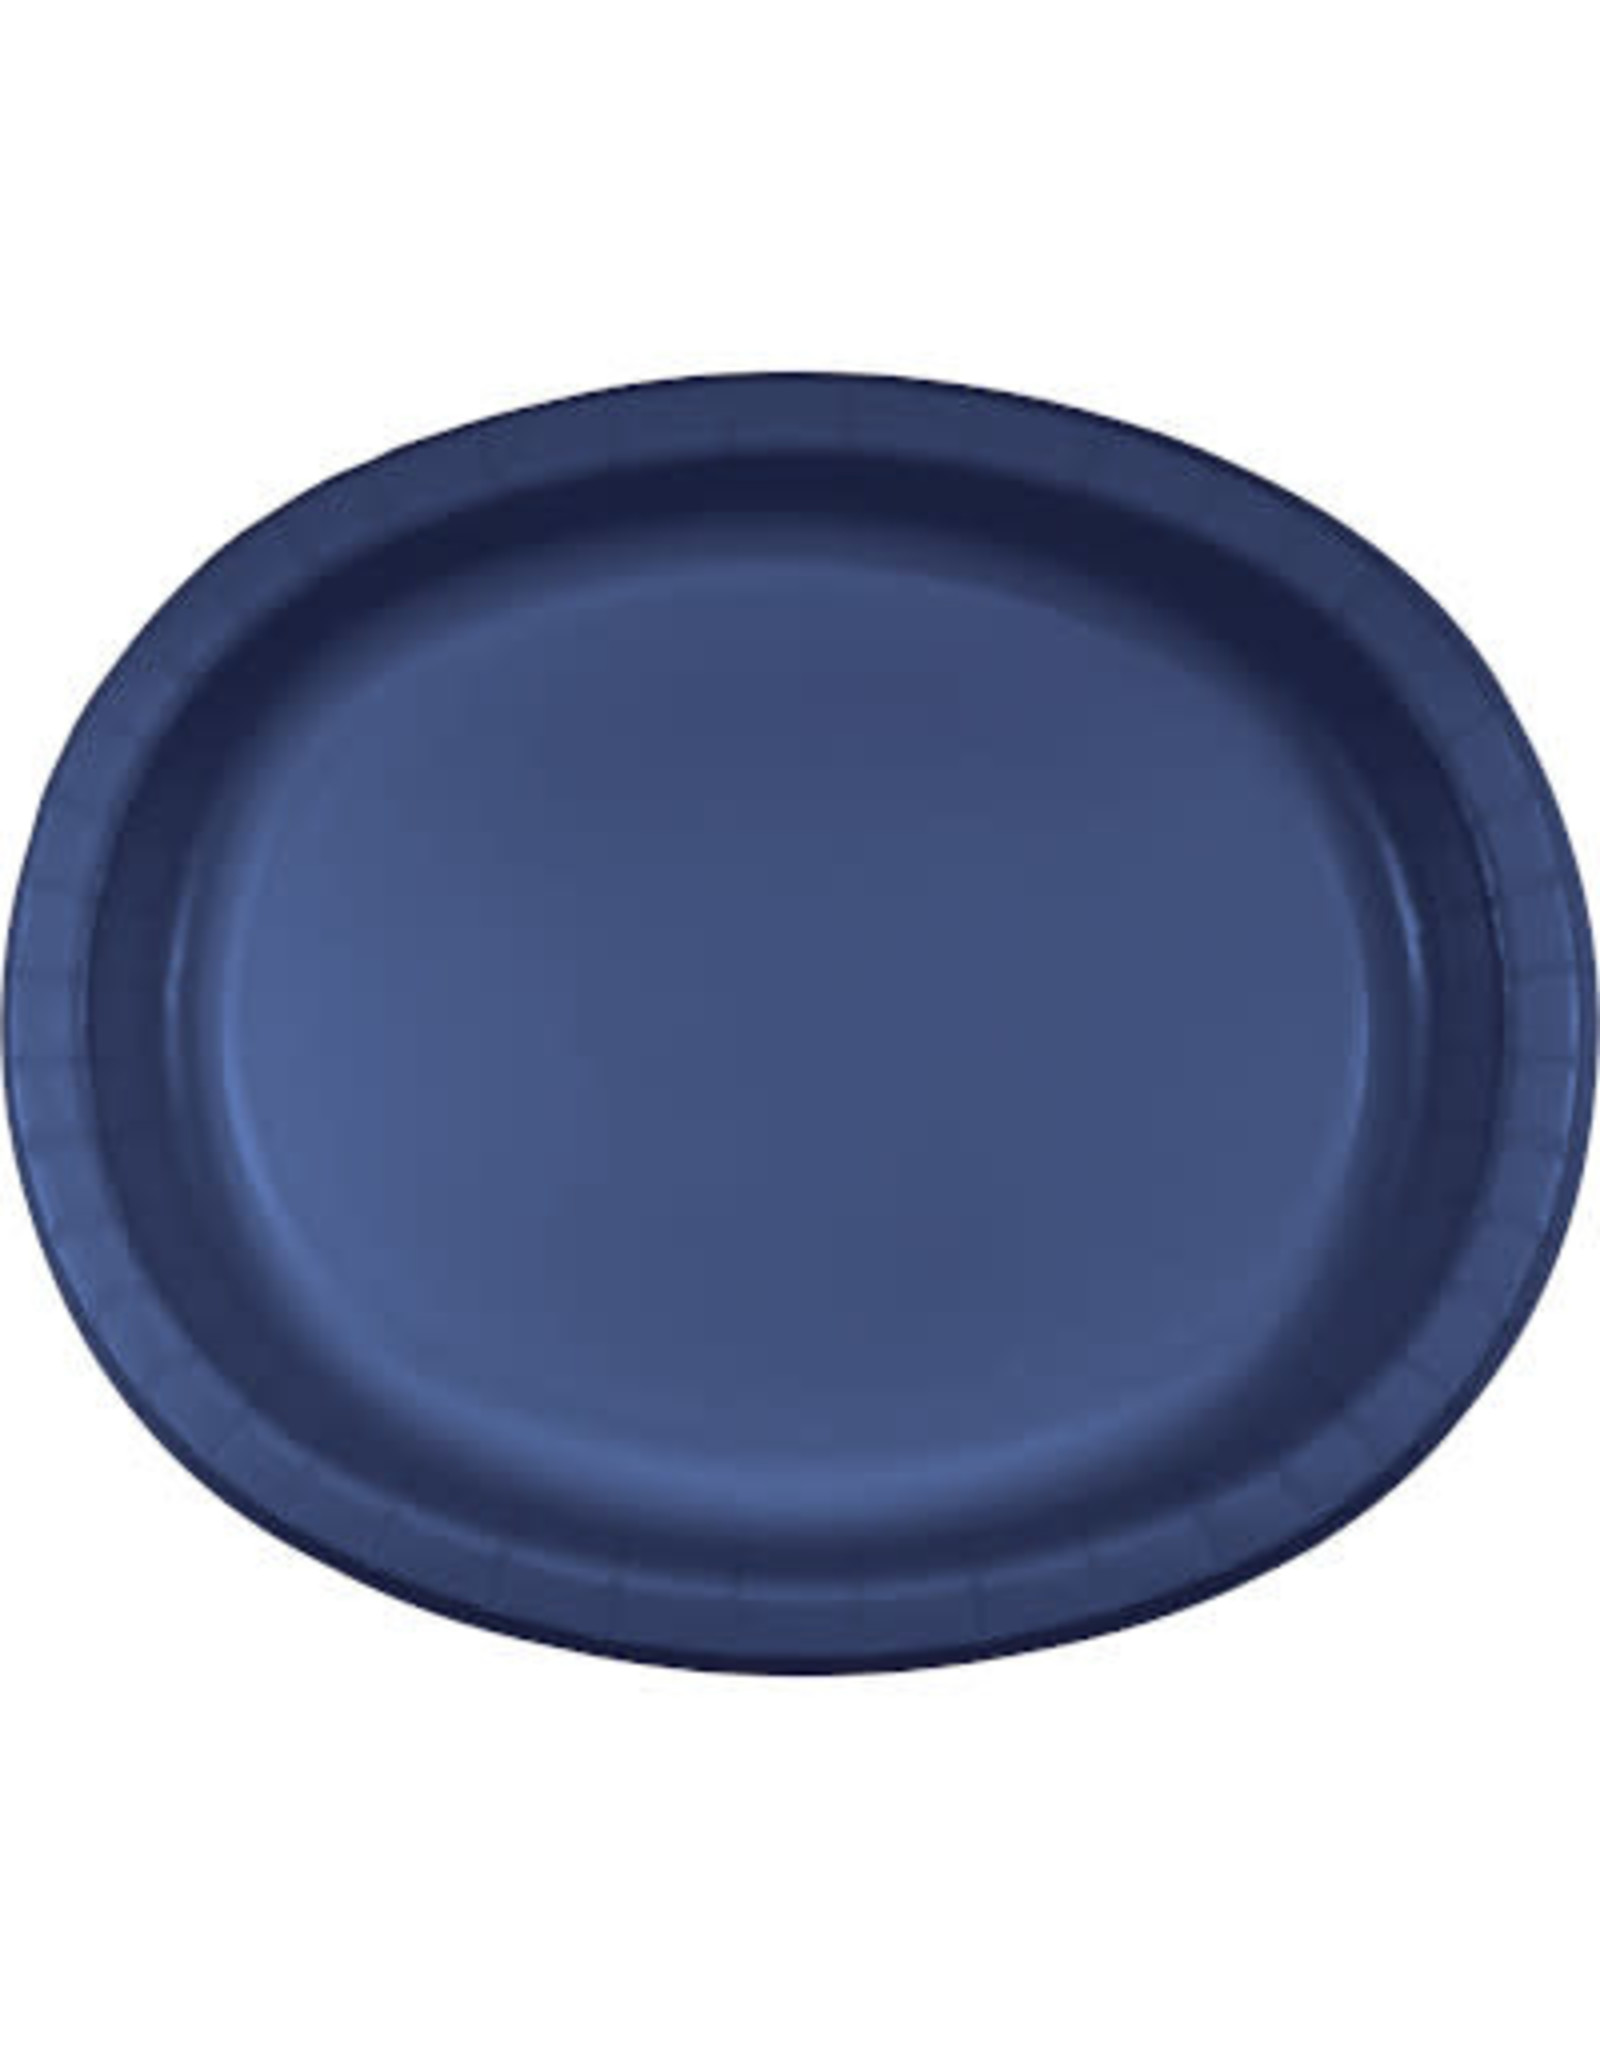 Touch of Color NAVY BLUE OVAL PLATES